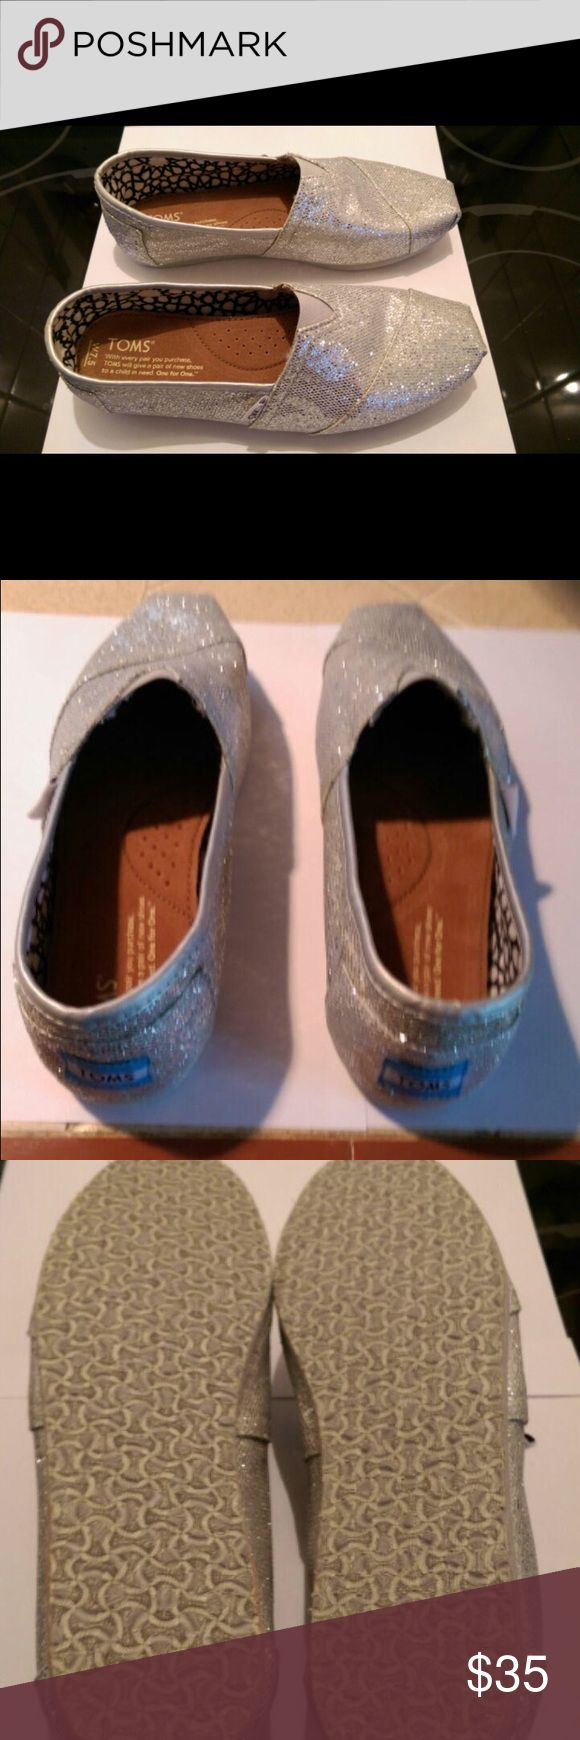 New Glitter Toms New, never worn, silver glitter Toms, size 7.5. Open to offers. TOMS Shoes Sneakers